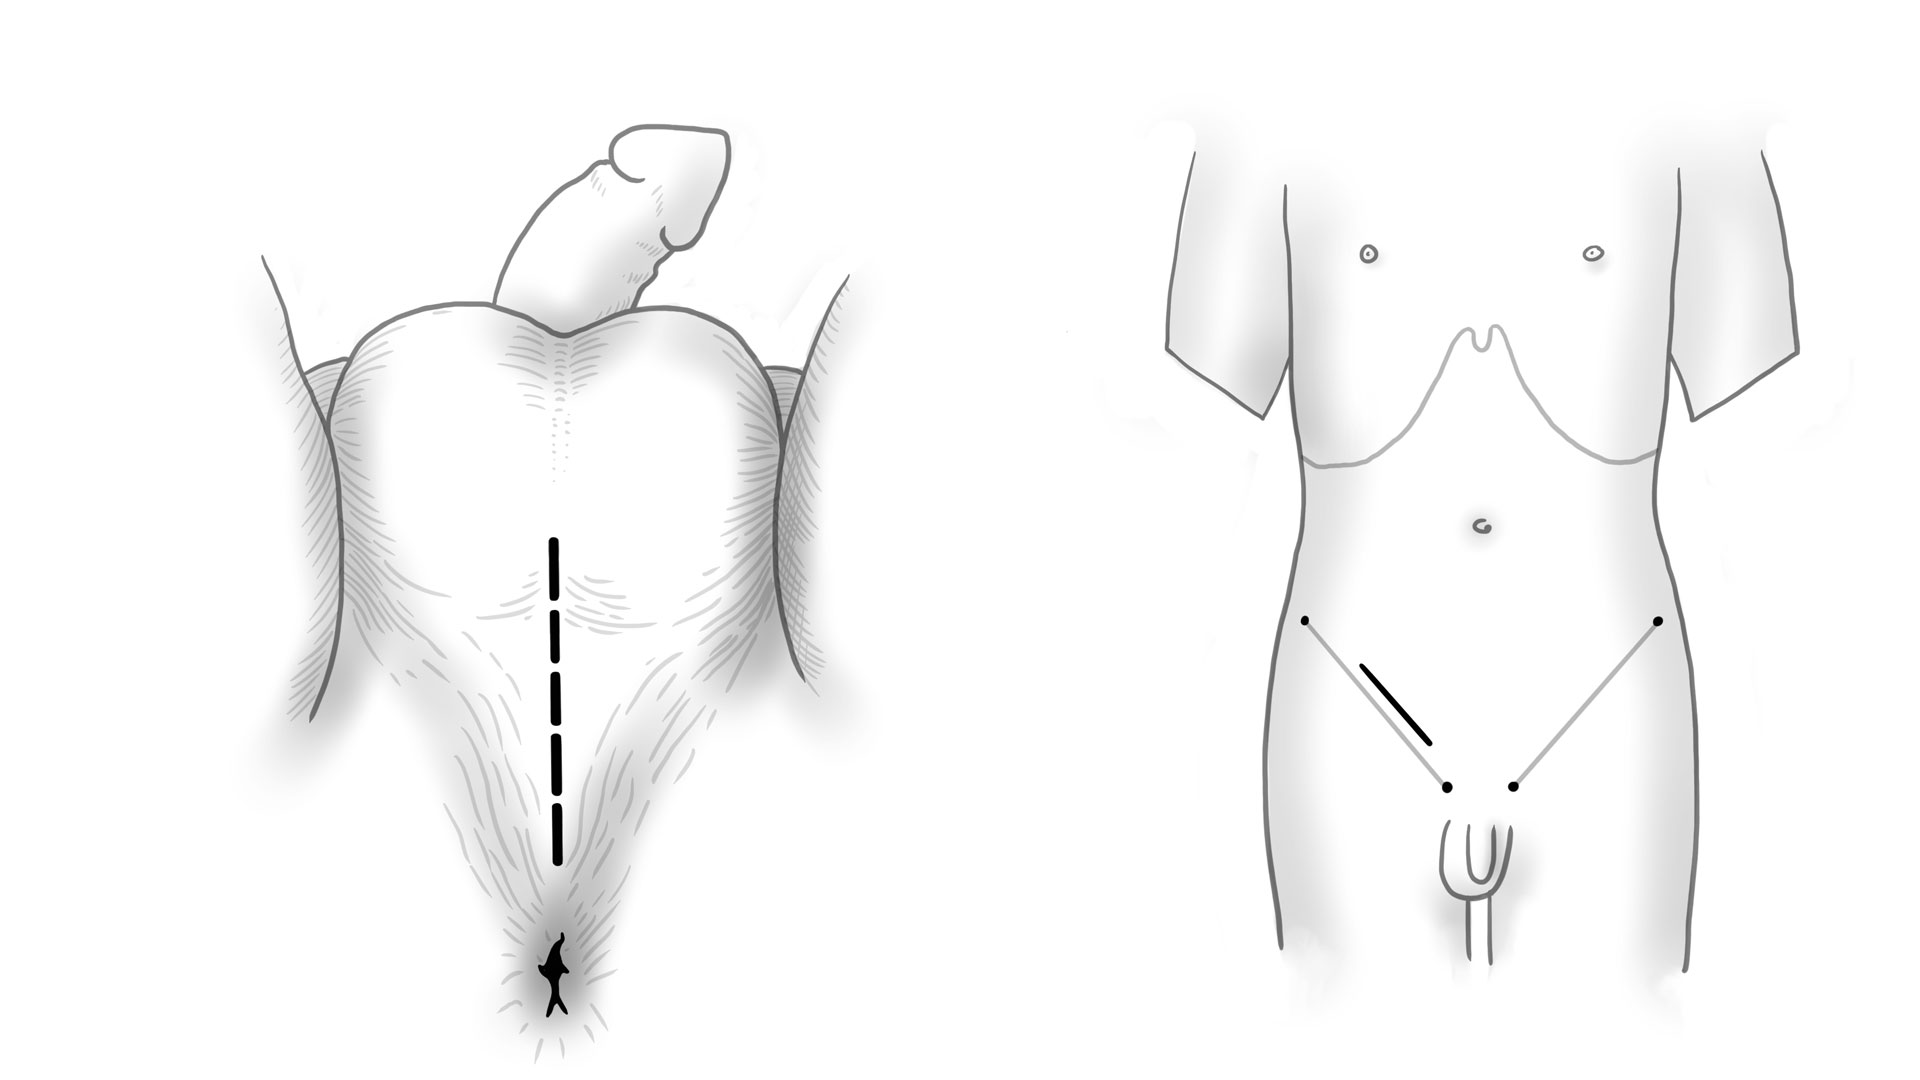 Sections Testicular surgery